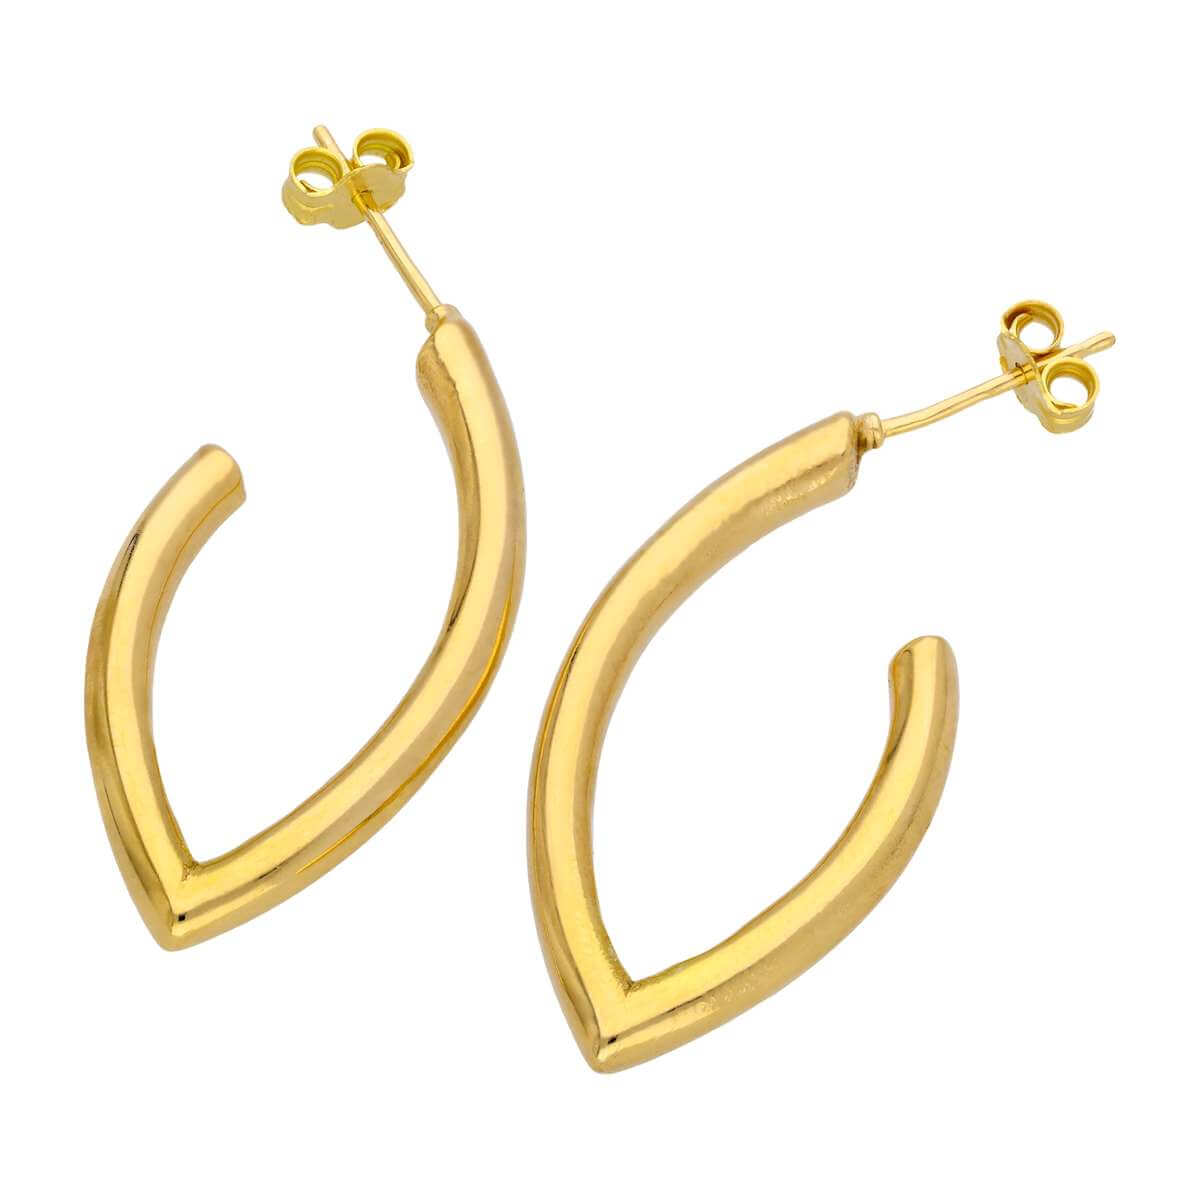 Gold Plated Sterling Silver Oval Open Hoop Stud Earrings